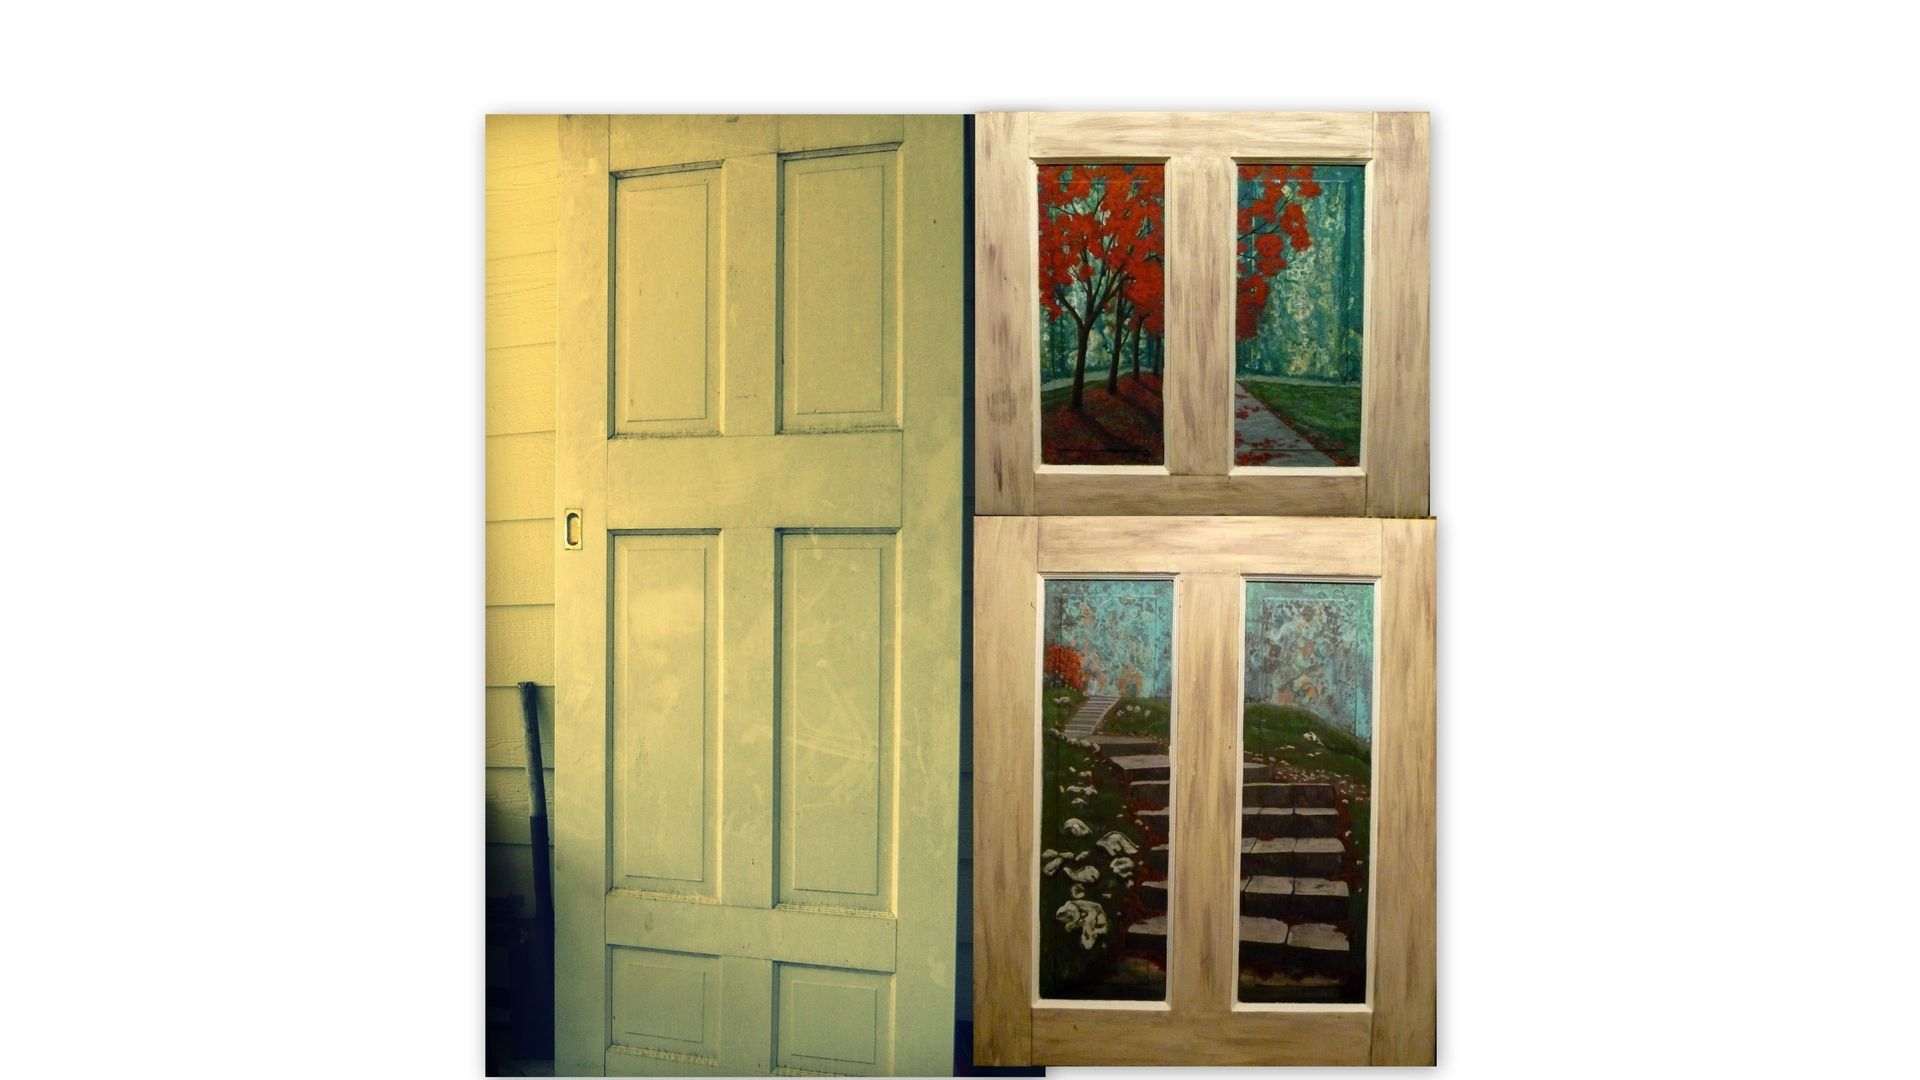 1080 #6E381D Custom Made Reclaimed Door By Awe Inspiring Art CustomMade.com save image Custom Made Entry Doors 45471920